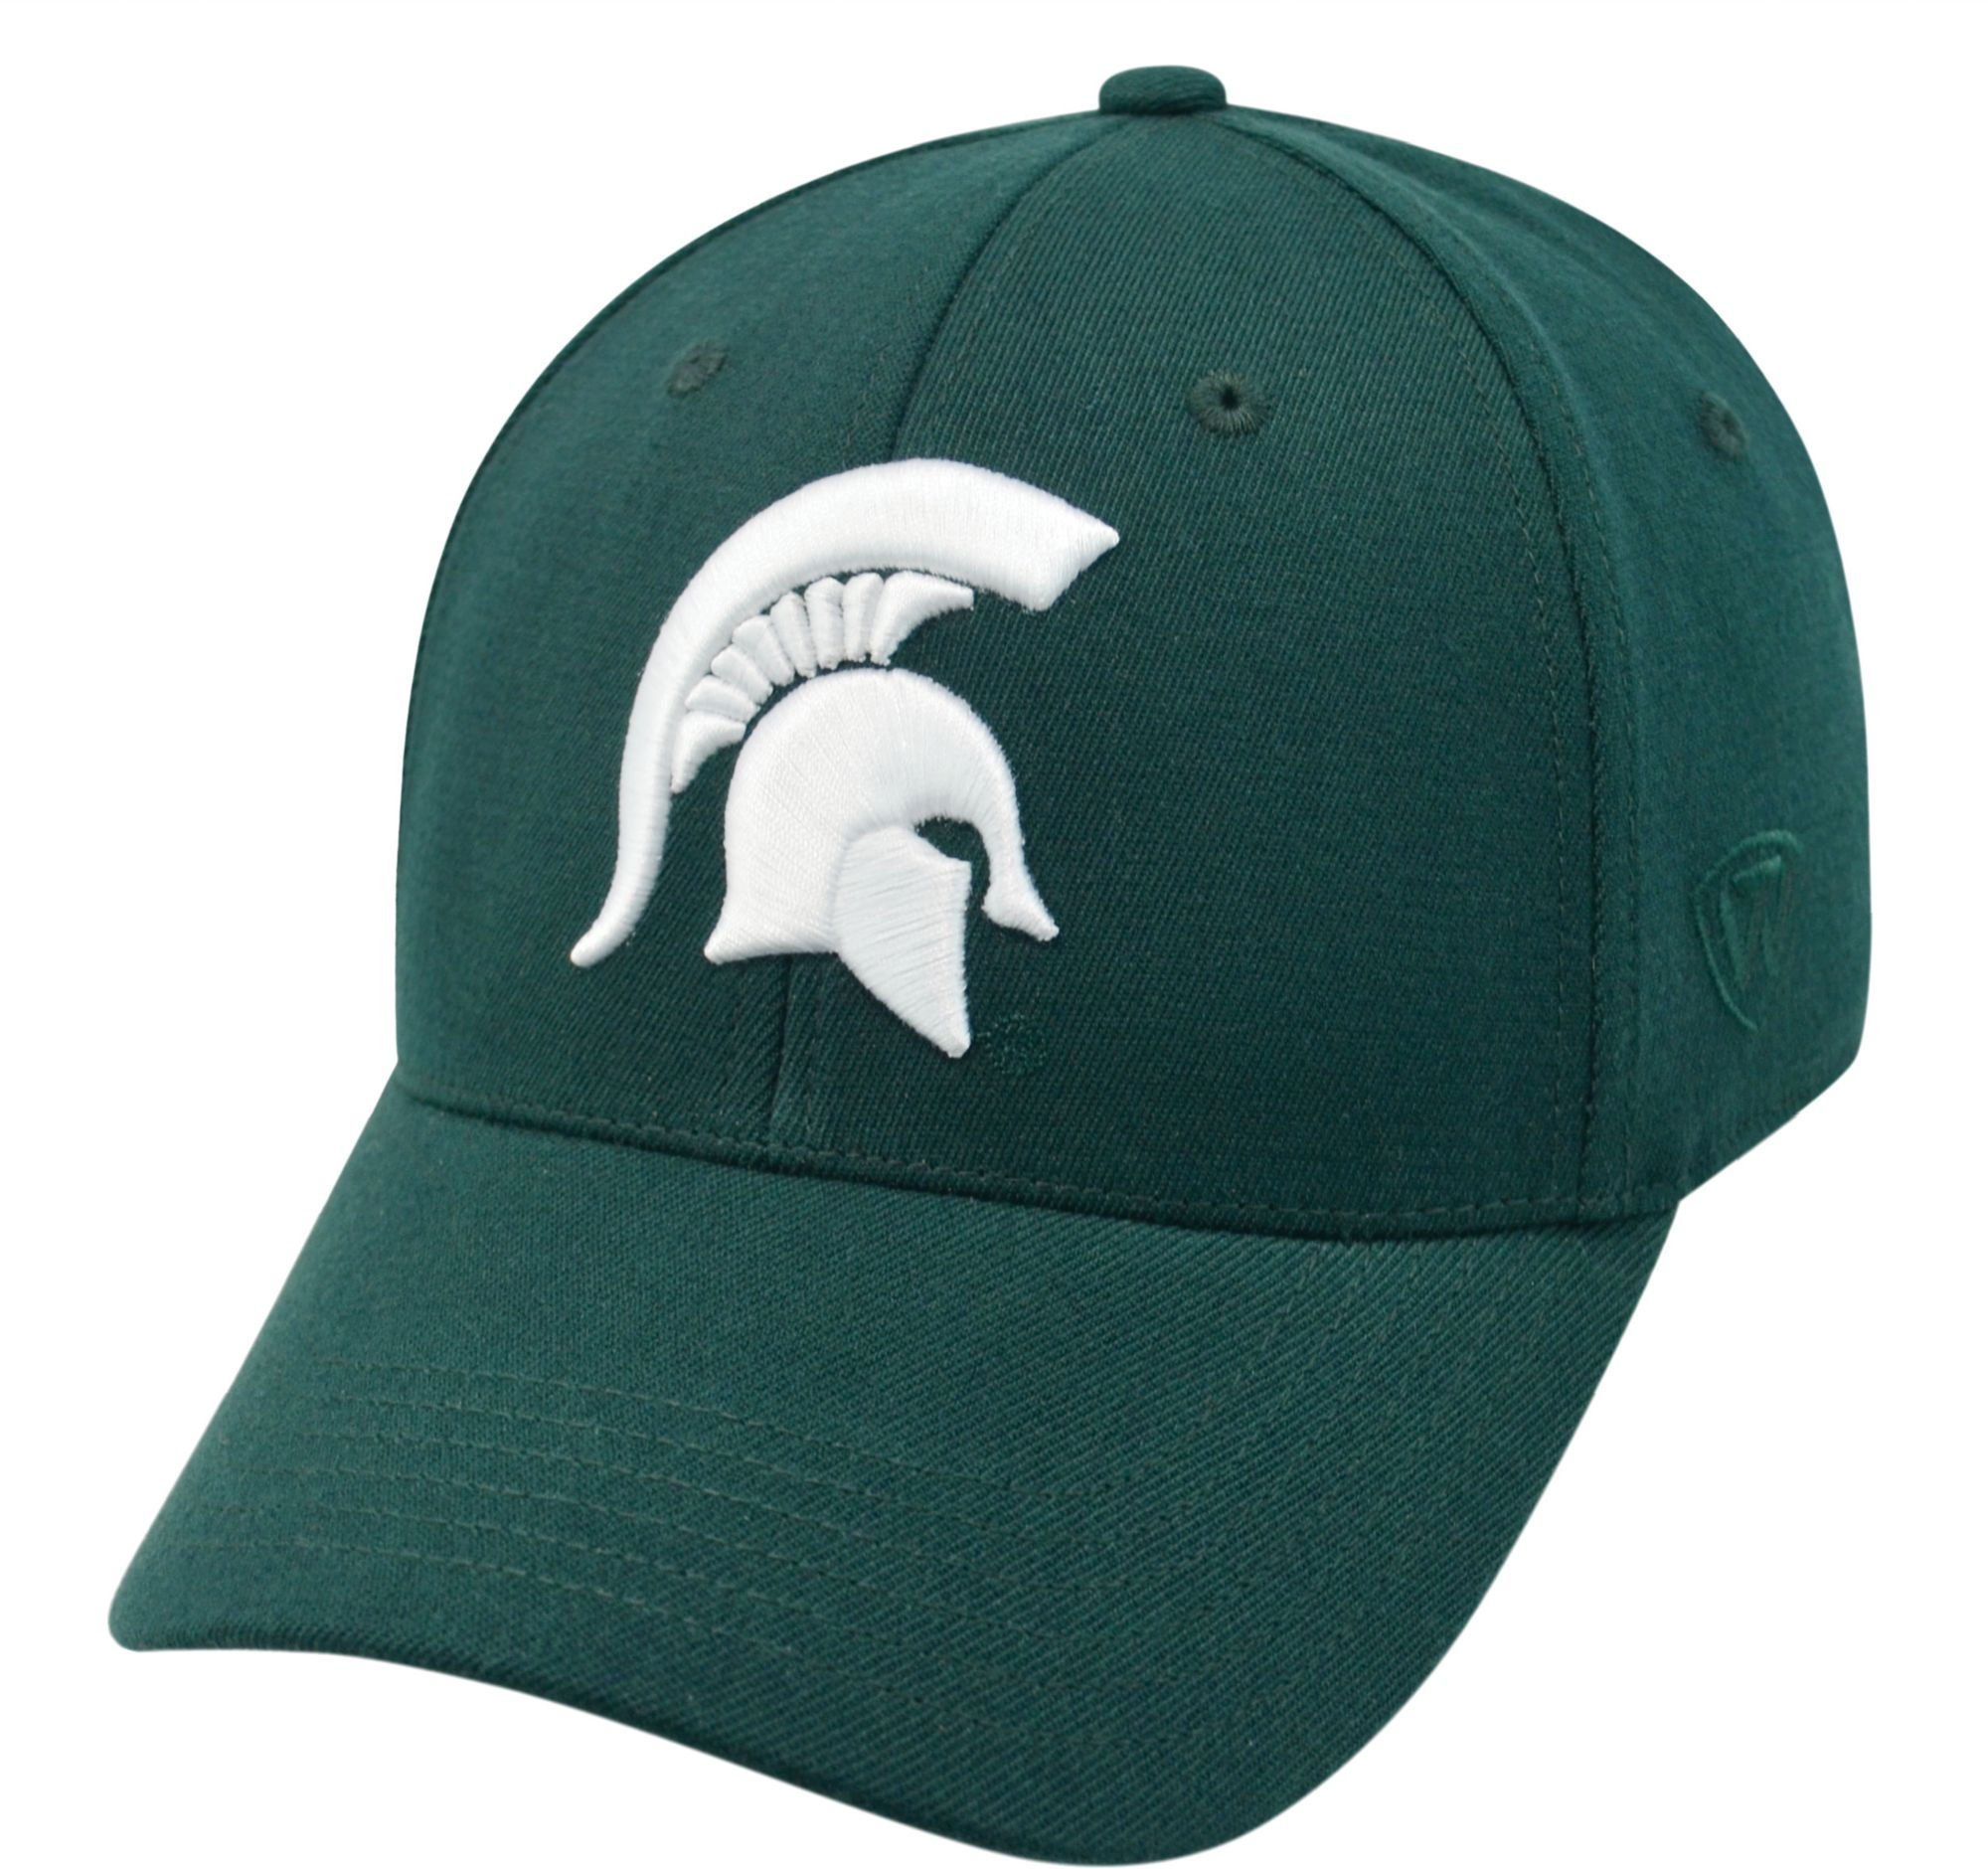 low priced 581a4 ce87f Top of the World Men s Michigan State Spartans Green Premium Collection M-Fit  Hat, Size  Medium Large, Team